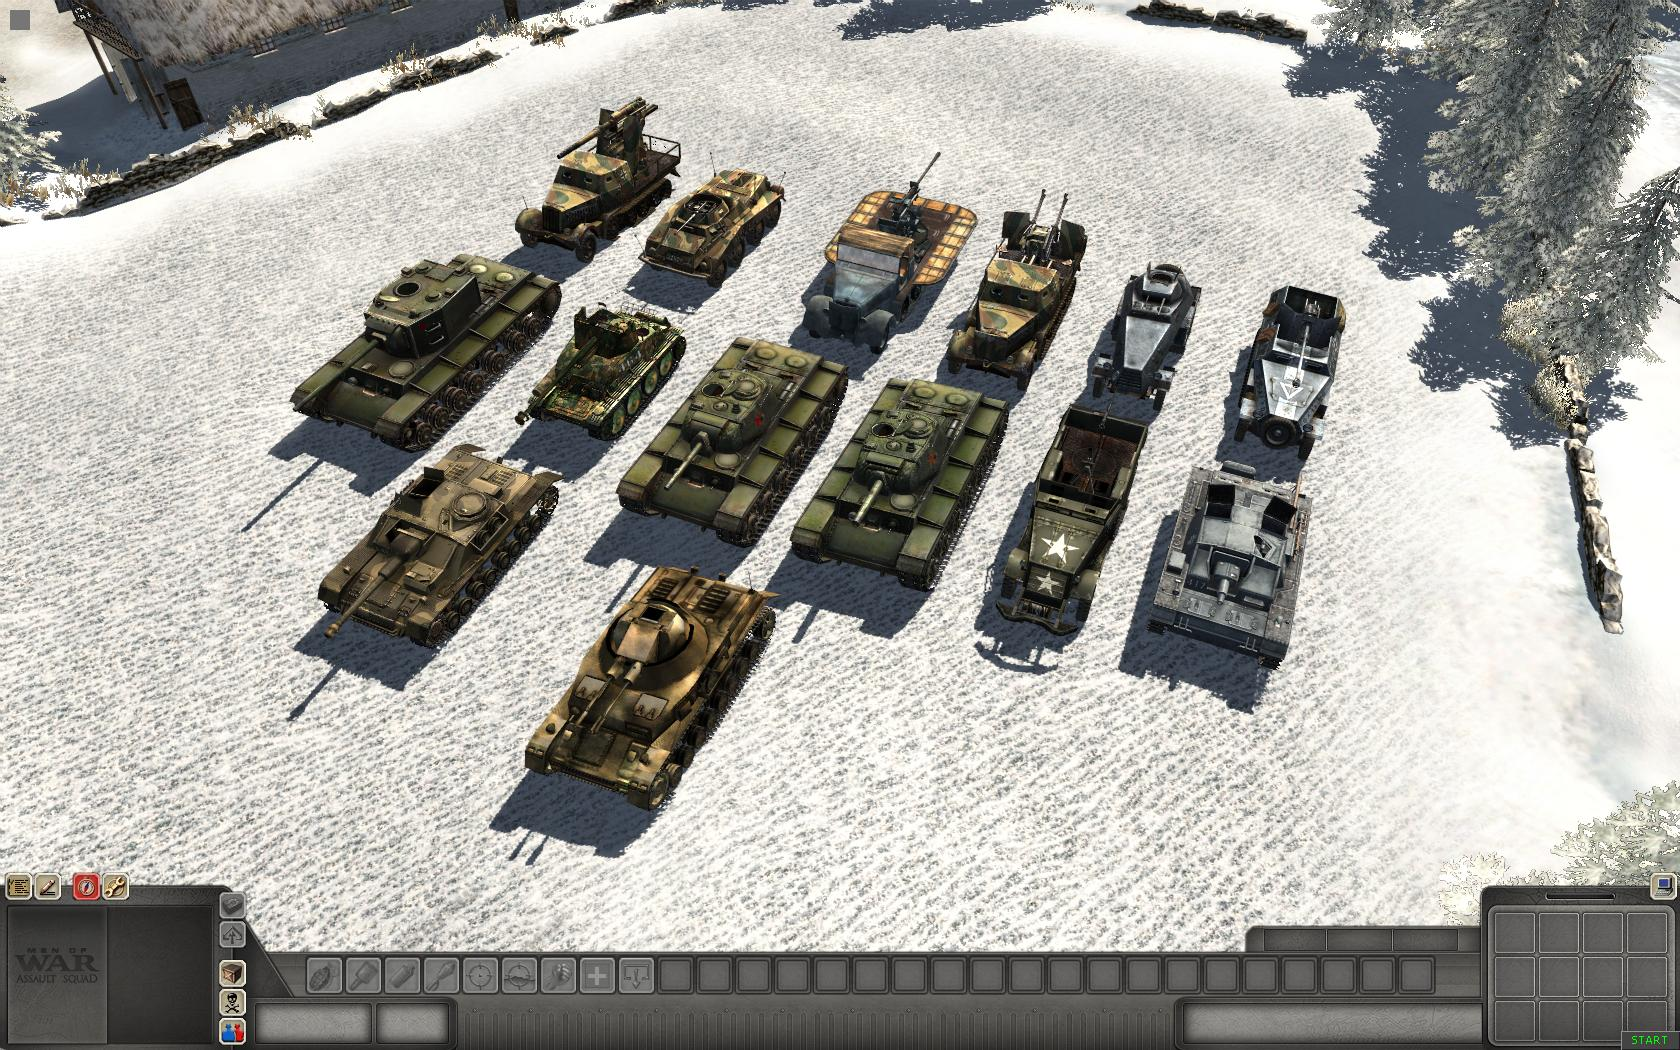 vehicles of the next release image war realism mod for men of war